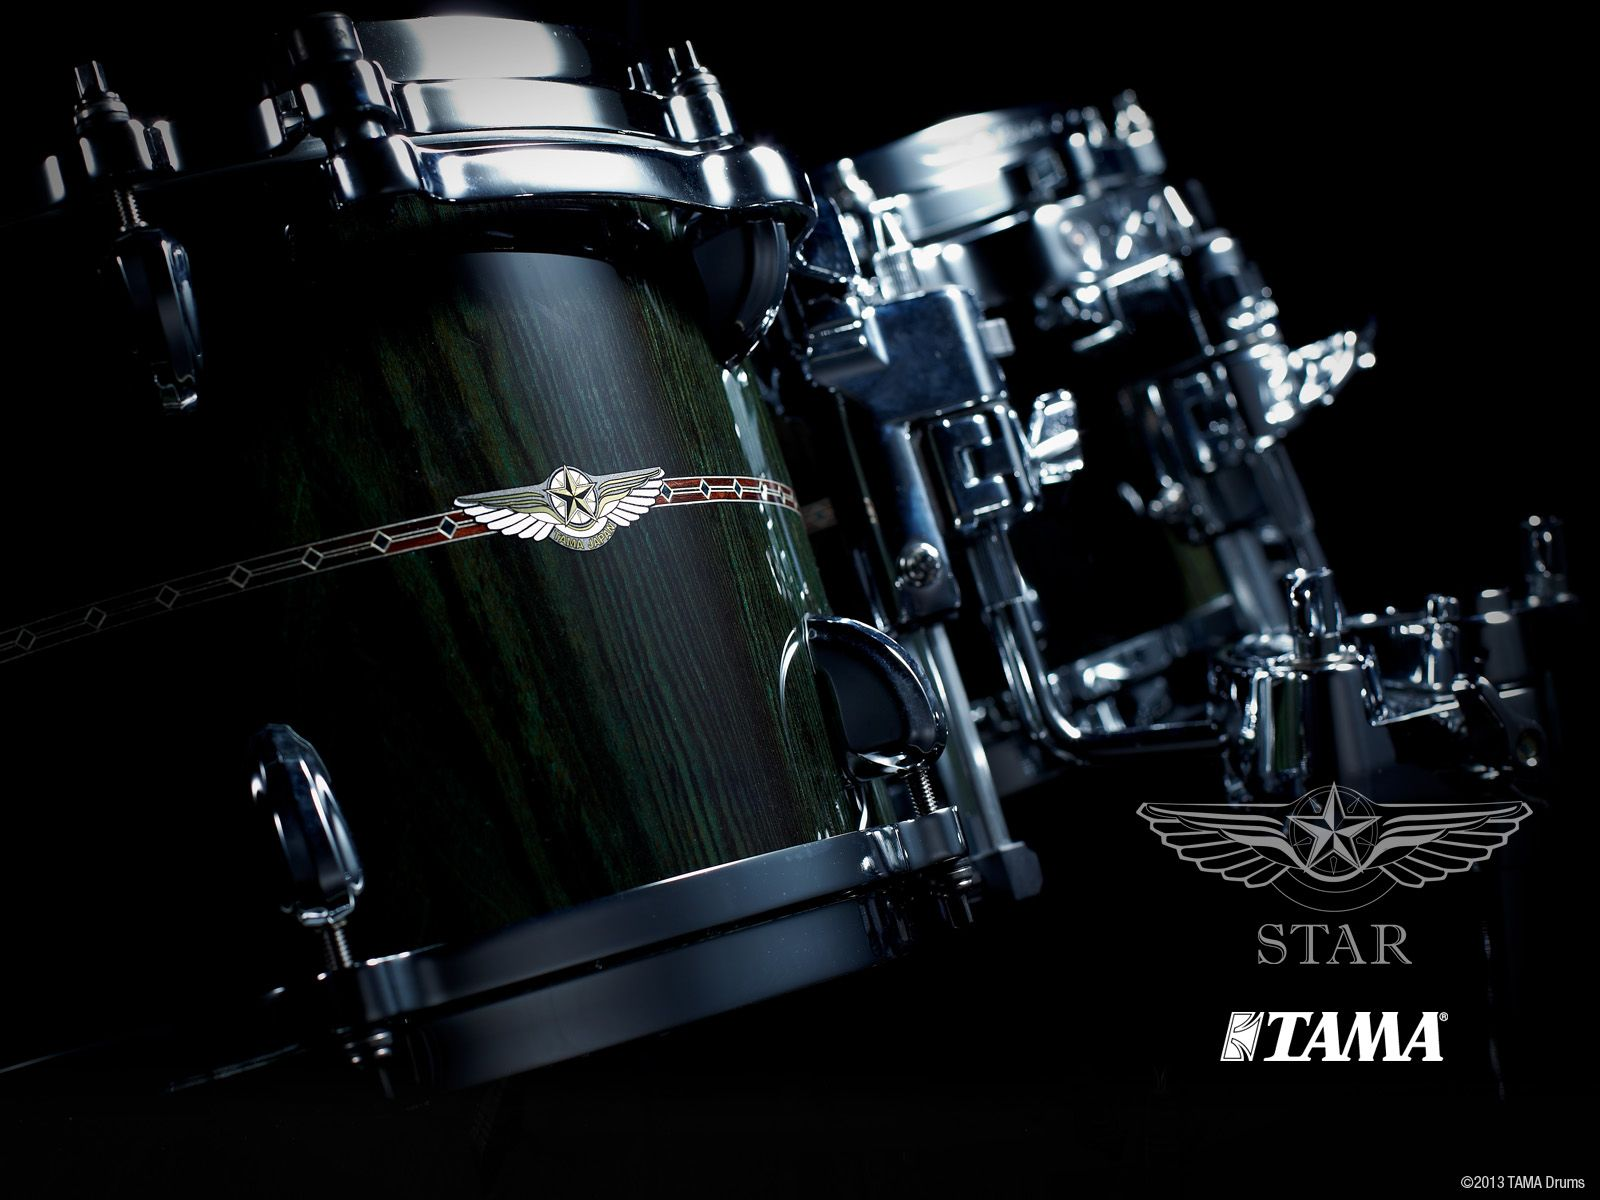 star bubinga dark green cordia cdkg kits in 2019 drums wallpaper drums drum accessories. Black Bedroom Furniture Sets. Home Design Ideas